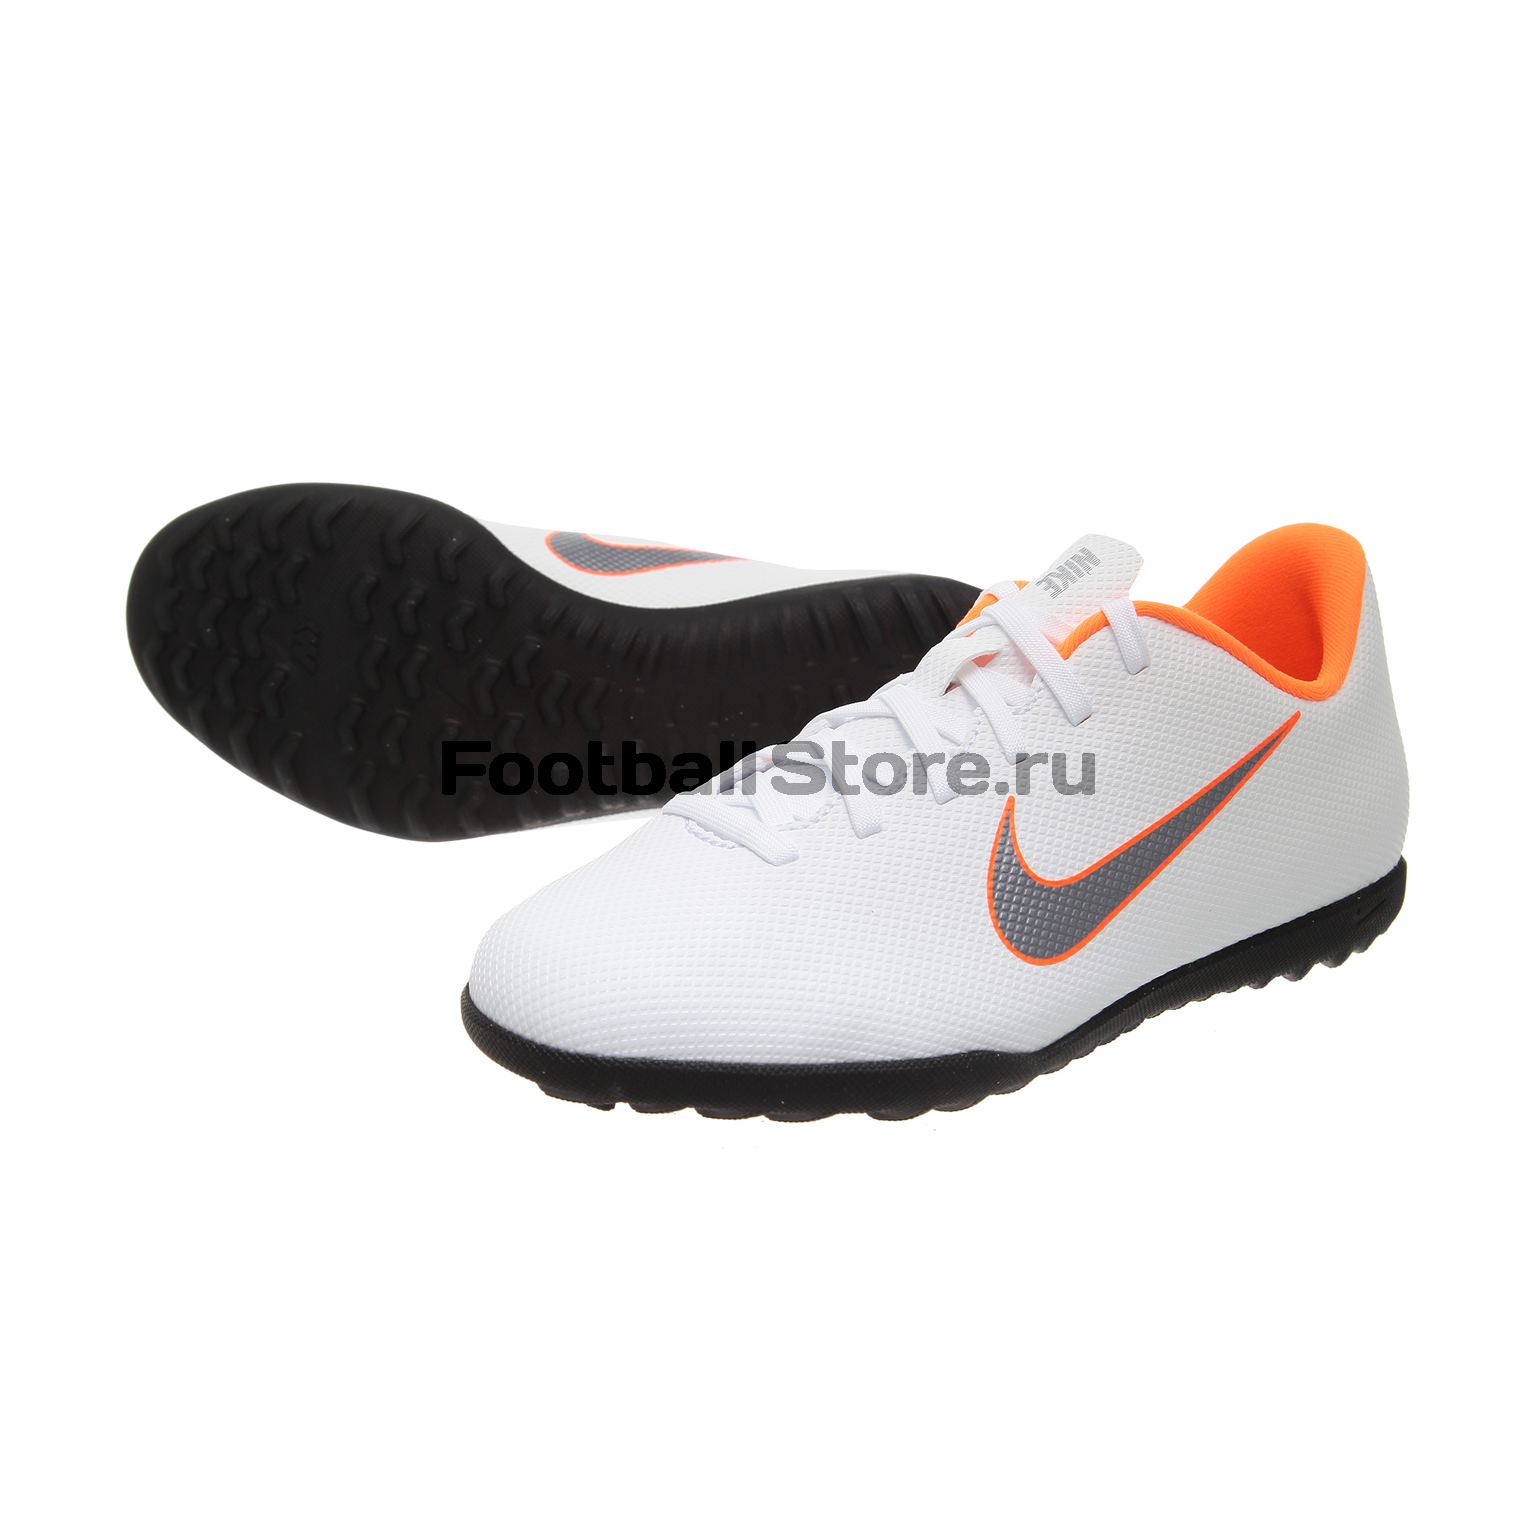 Шиповки детские Nike Vapor 12 Club GS TF AH7355-107 бутсы nike шиповки nike jr tiempox legend vi tf 819191 018